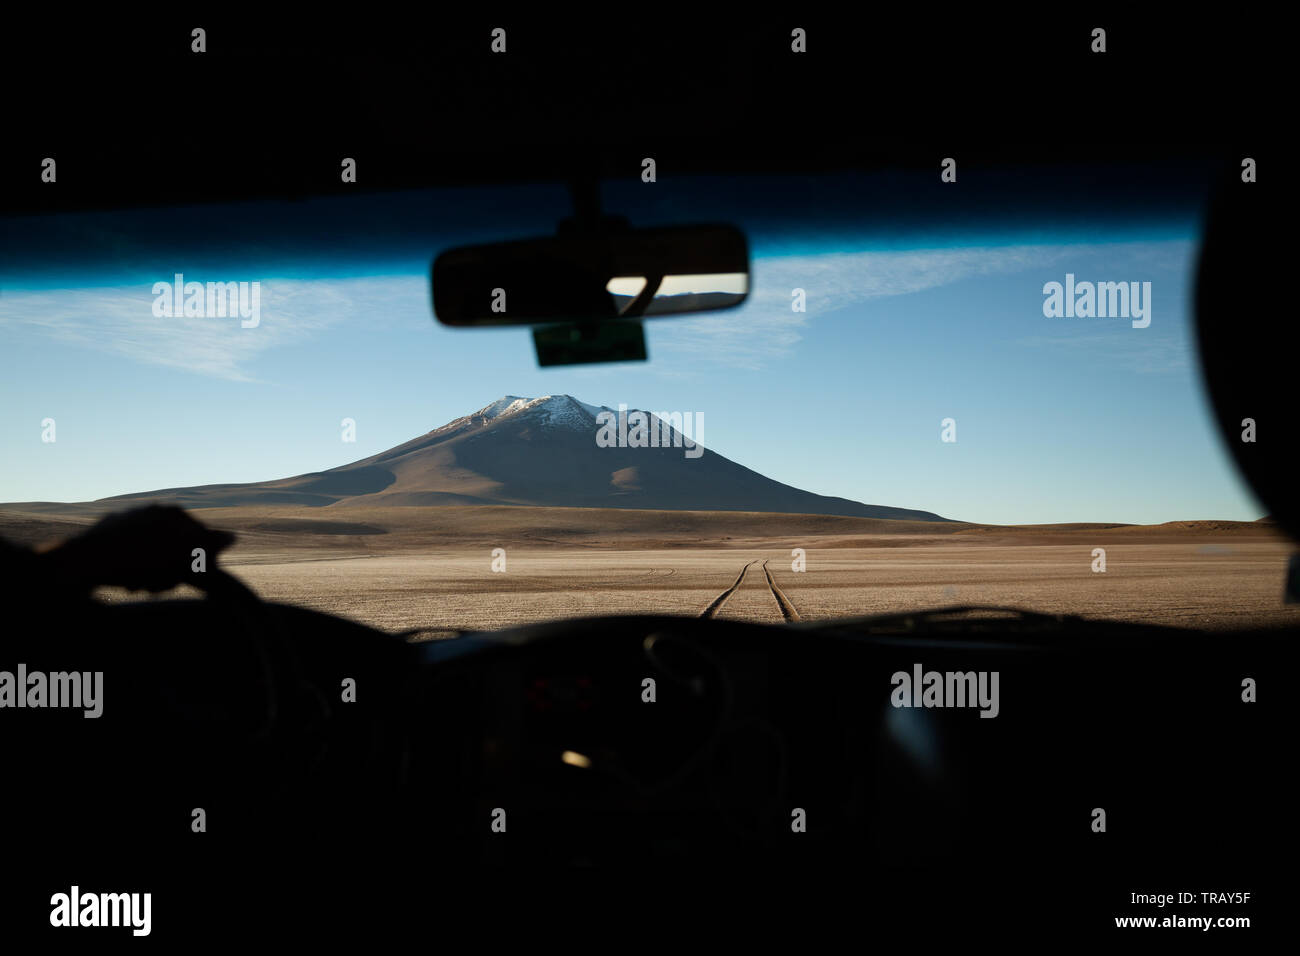 Driving on dirt track toward a volcanic peak on the Bolivian altiplano - Stock Image